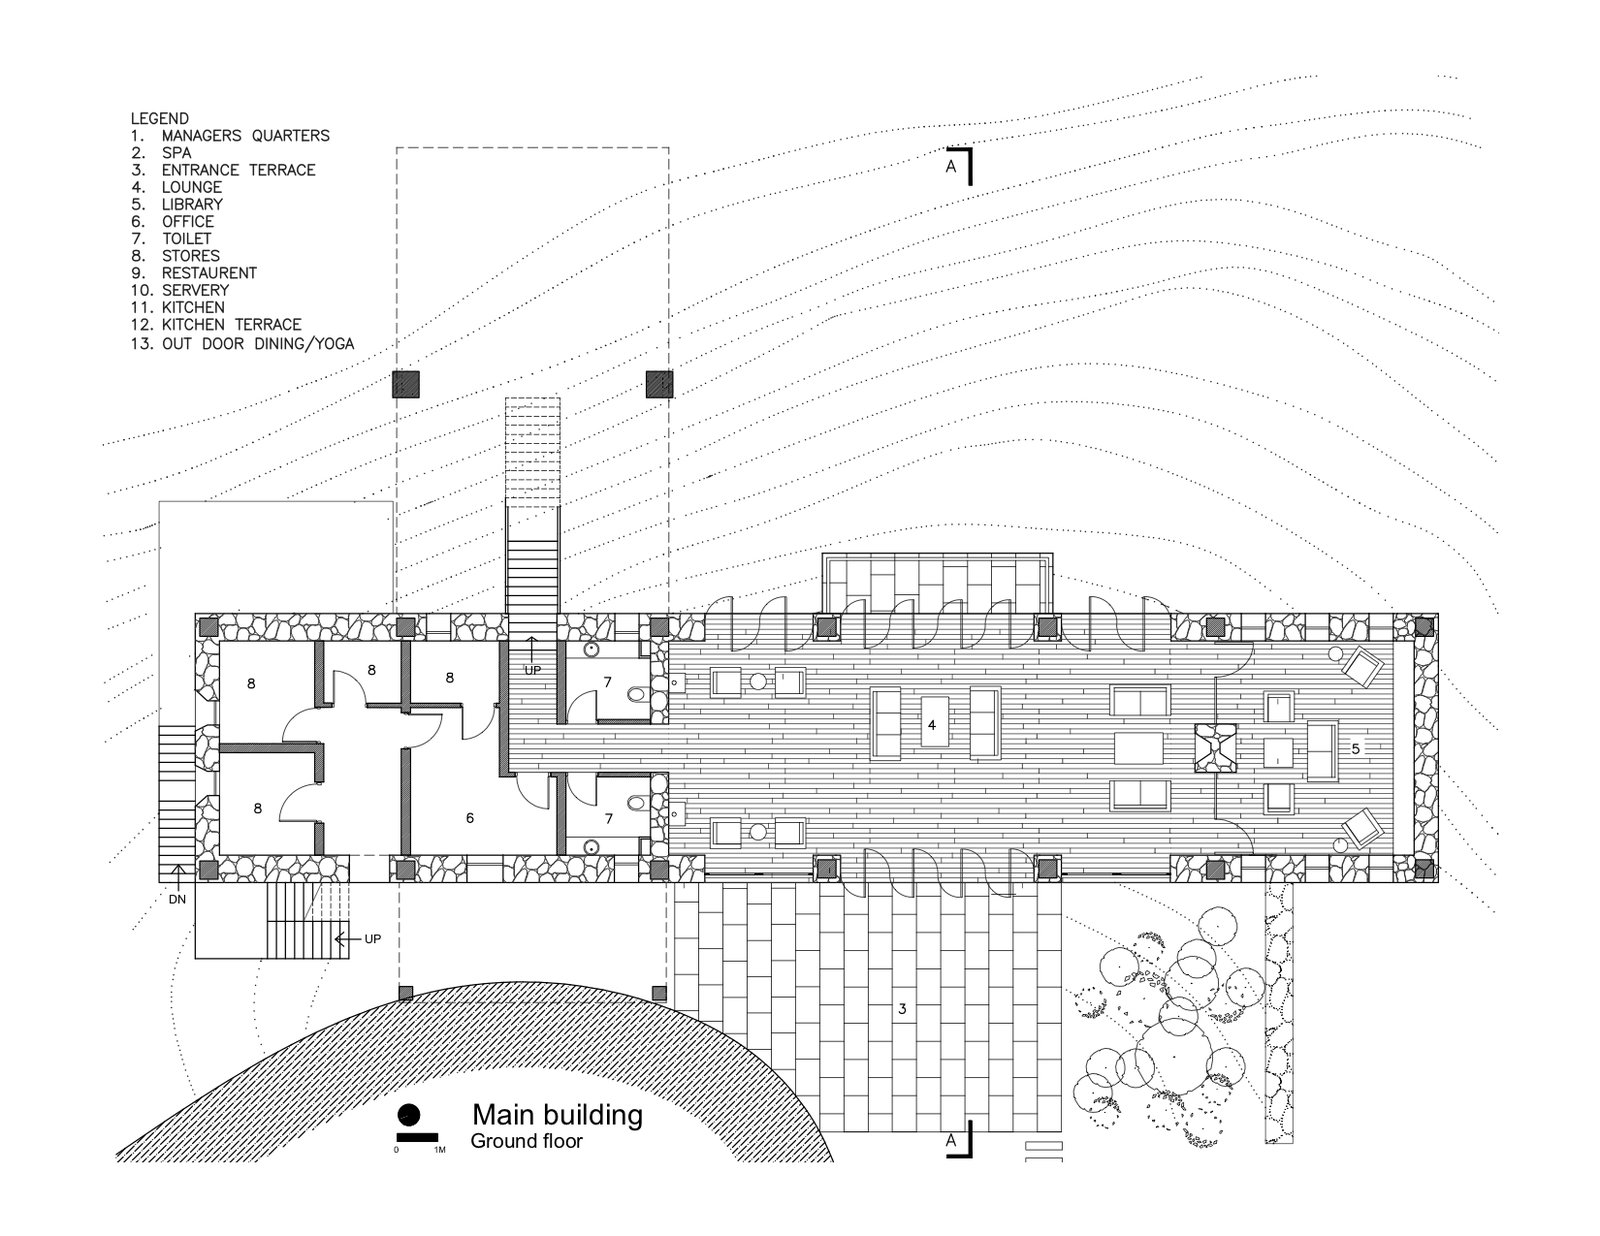 Ground floor plan  Photo 14 of 15 in A New Retreat in the Indian Himalayas Captures Epic Views